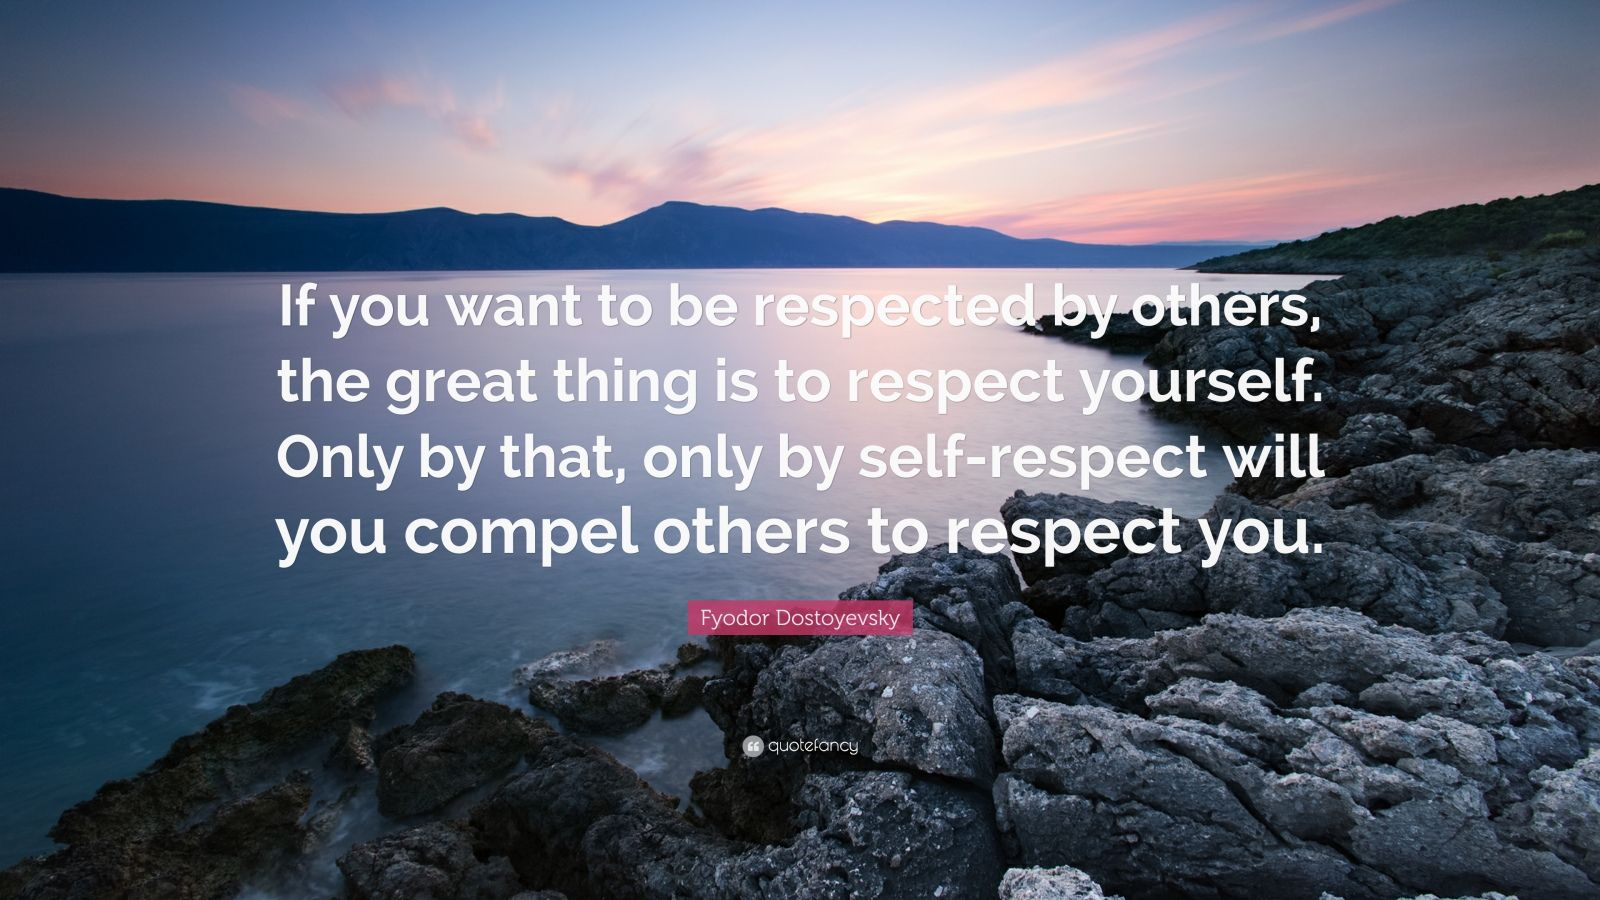 """Fyodor Dostoyevsky Quote: """"If you want to be respected by others, the great thing is to respect yourself. Only by that, only by self-respect will you compel others to respect you."""""""